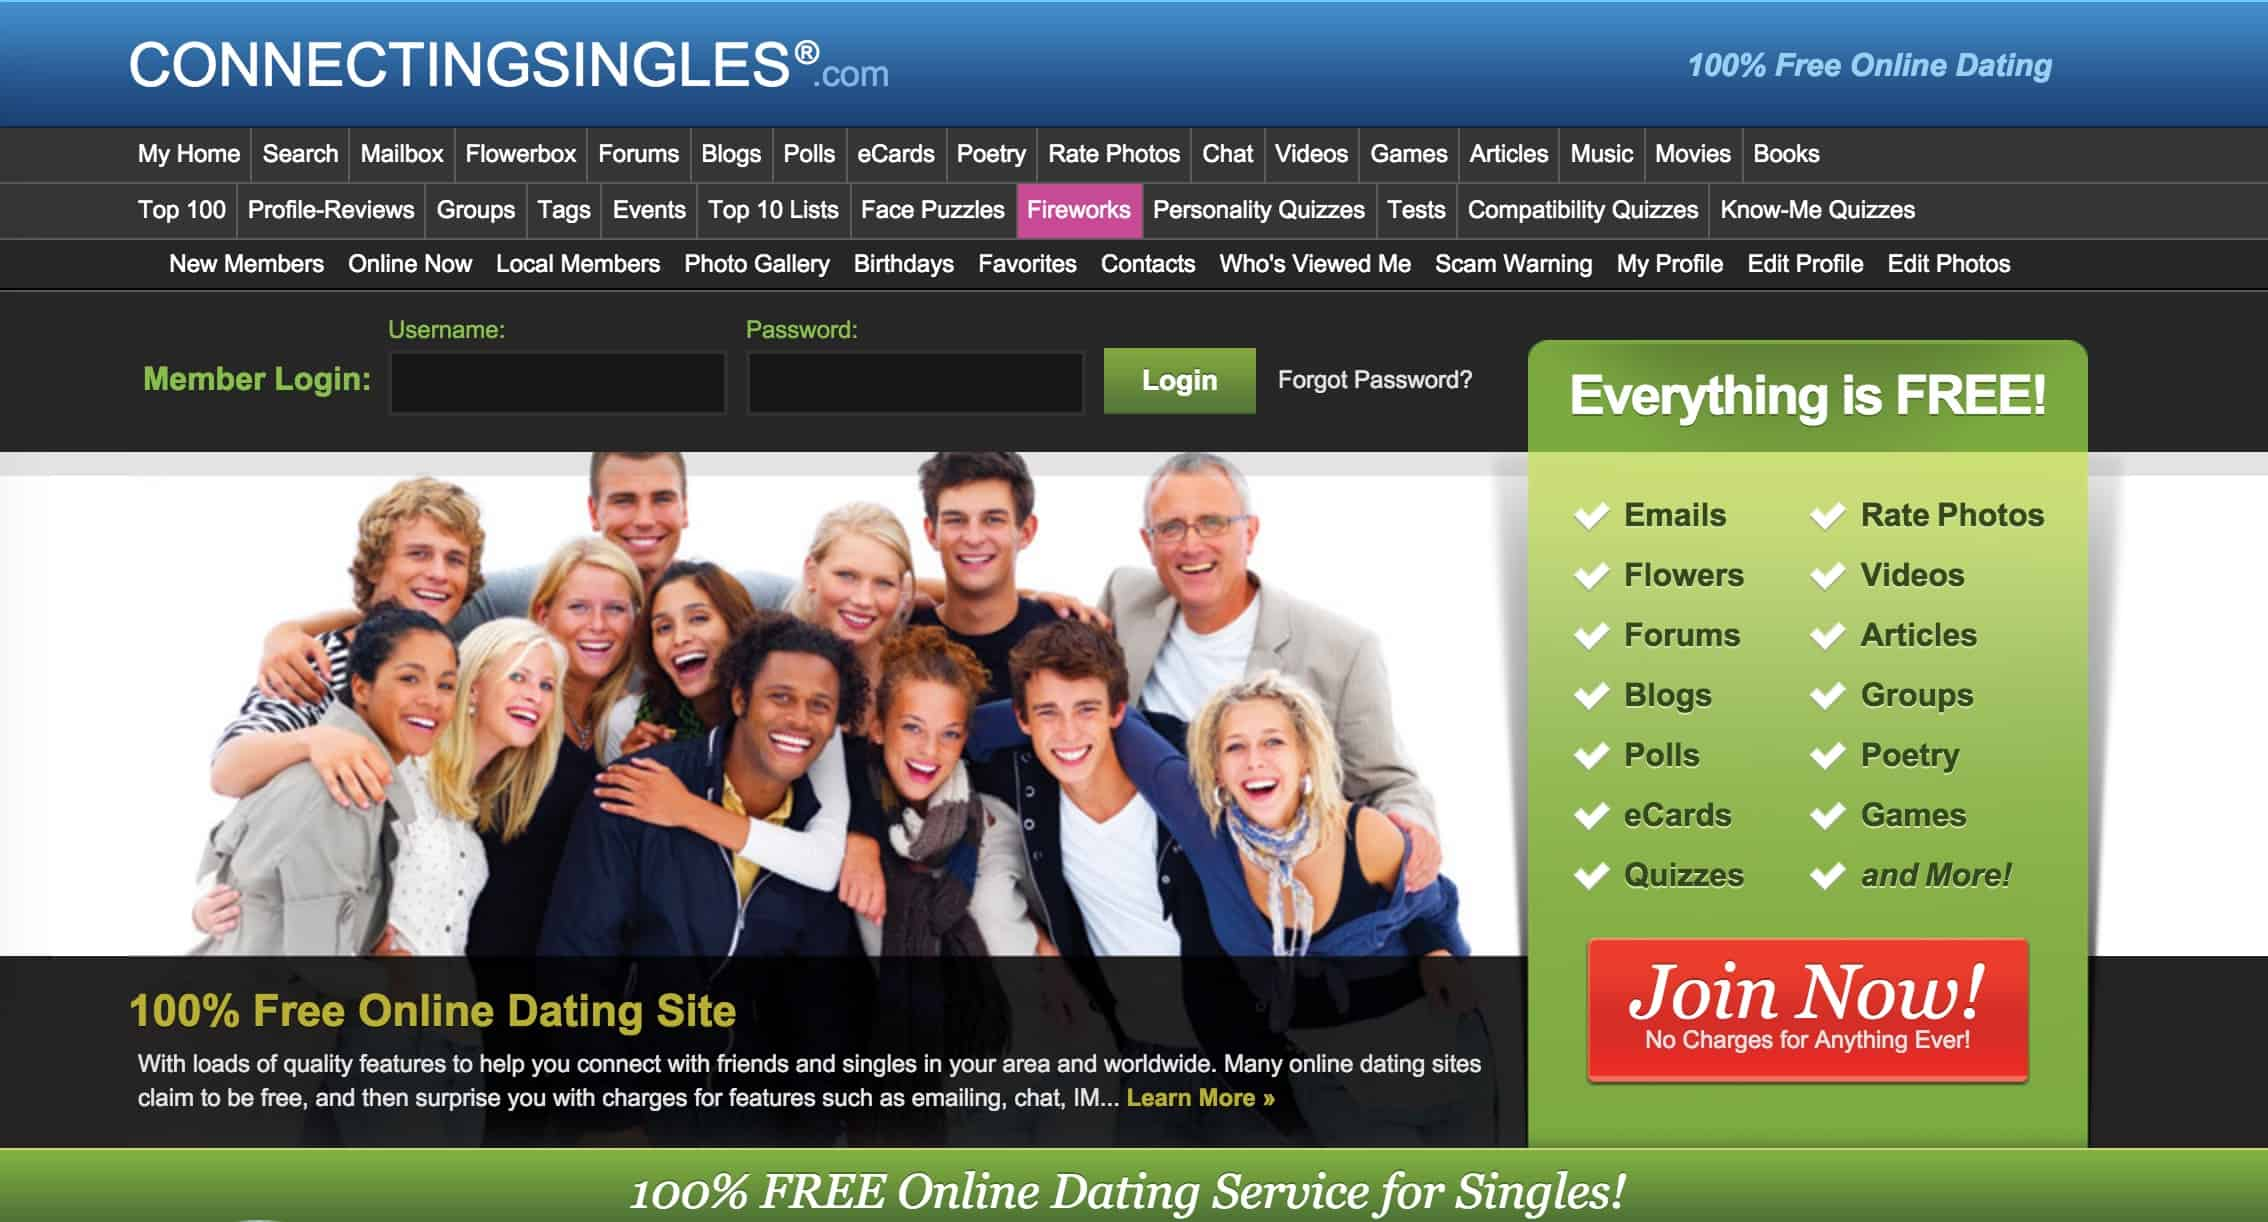 100% free online dating in kennedyville 100% free online dating site for singles of all races and interests to find available singles to flirt, date, fall in love, and create relationships.